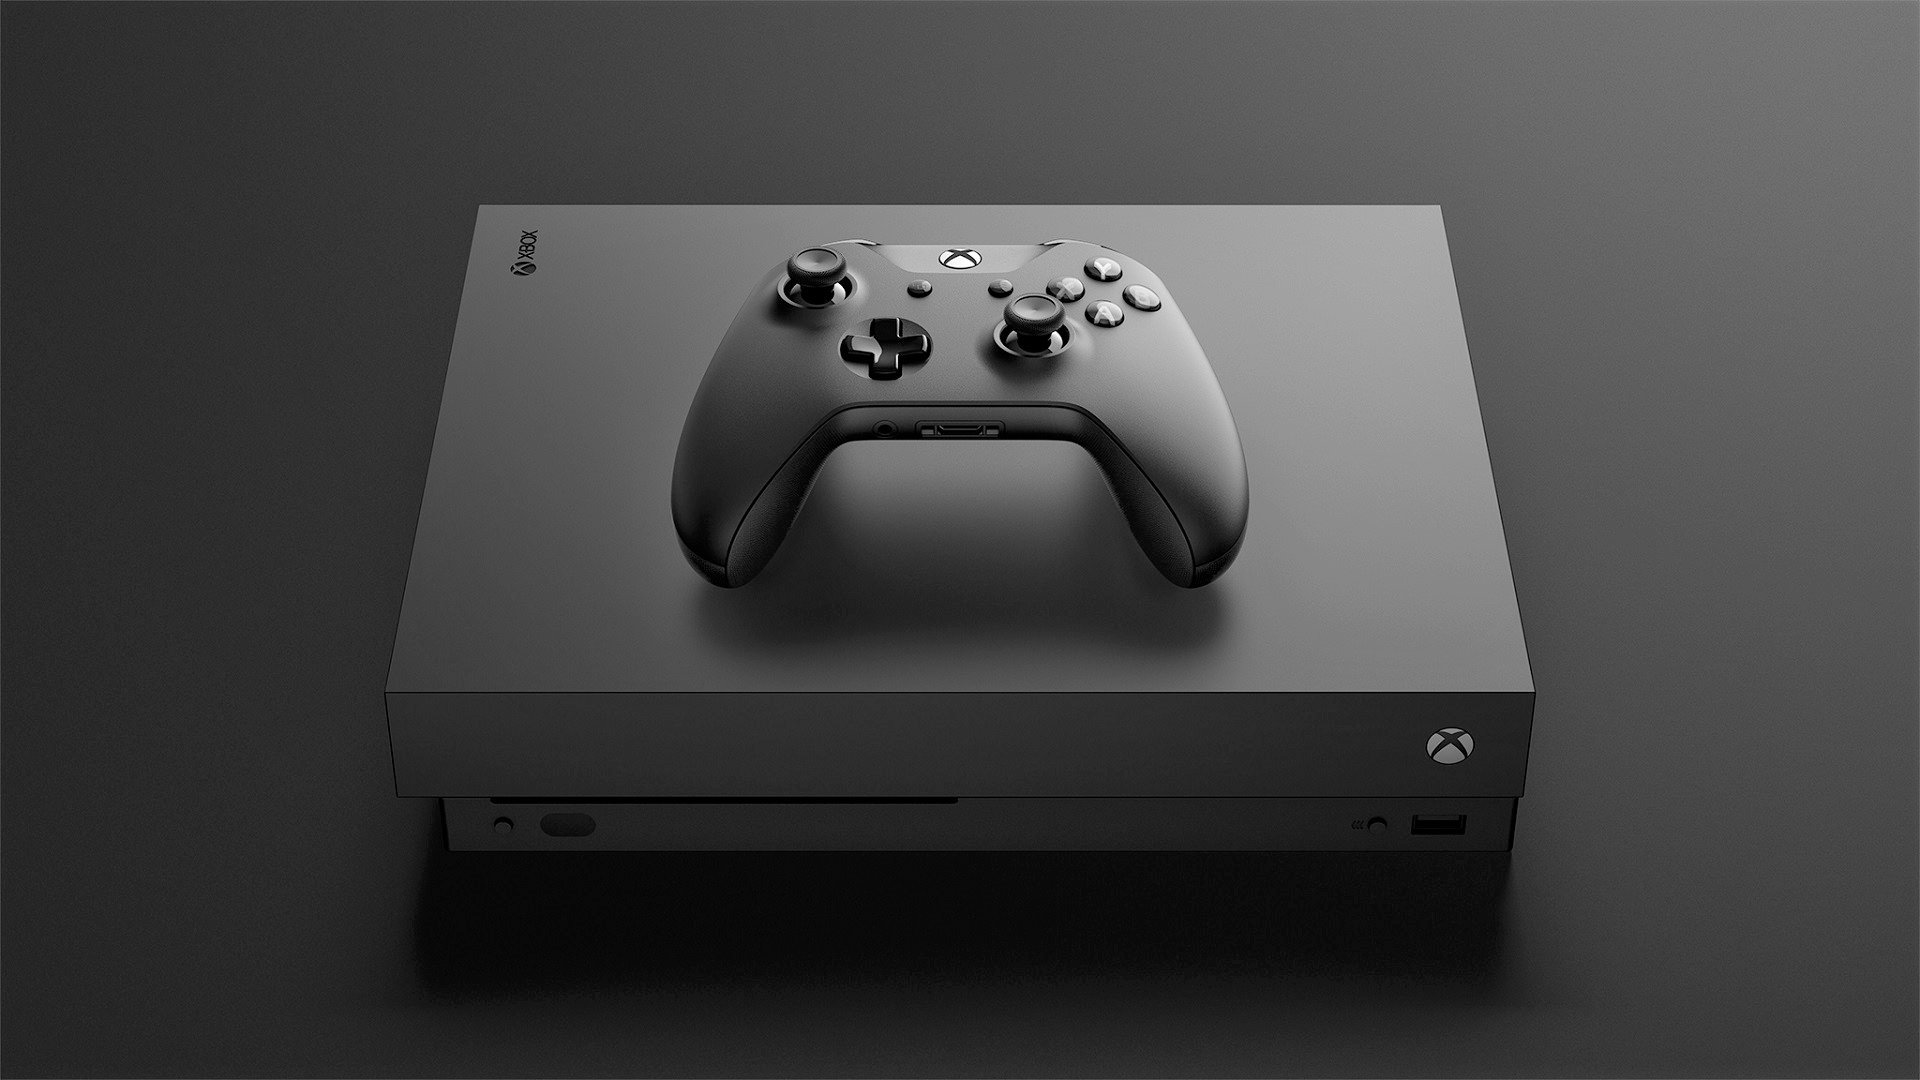 No Xbox One X on store shelves